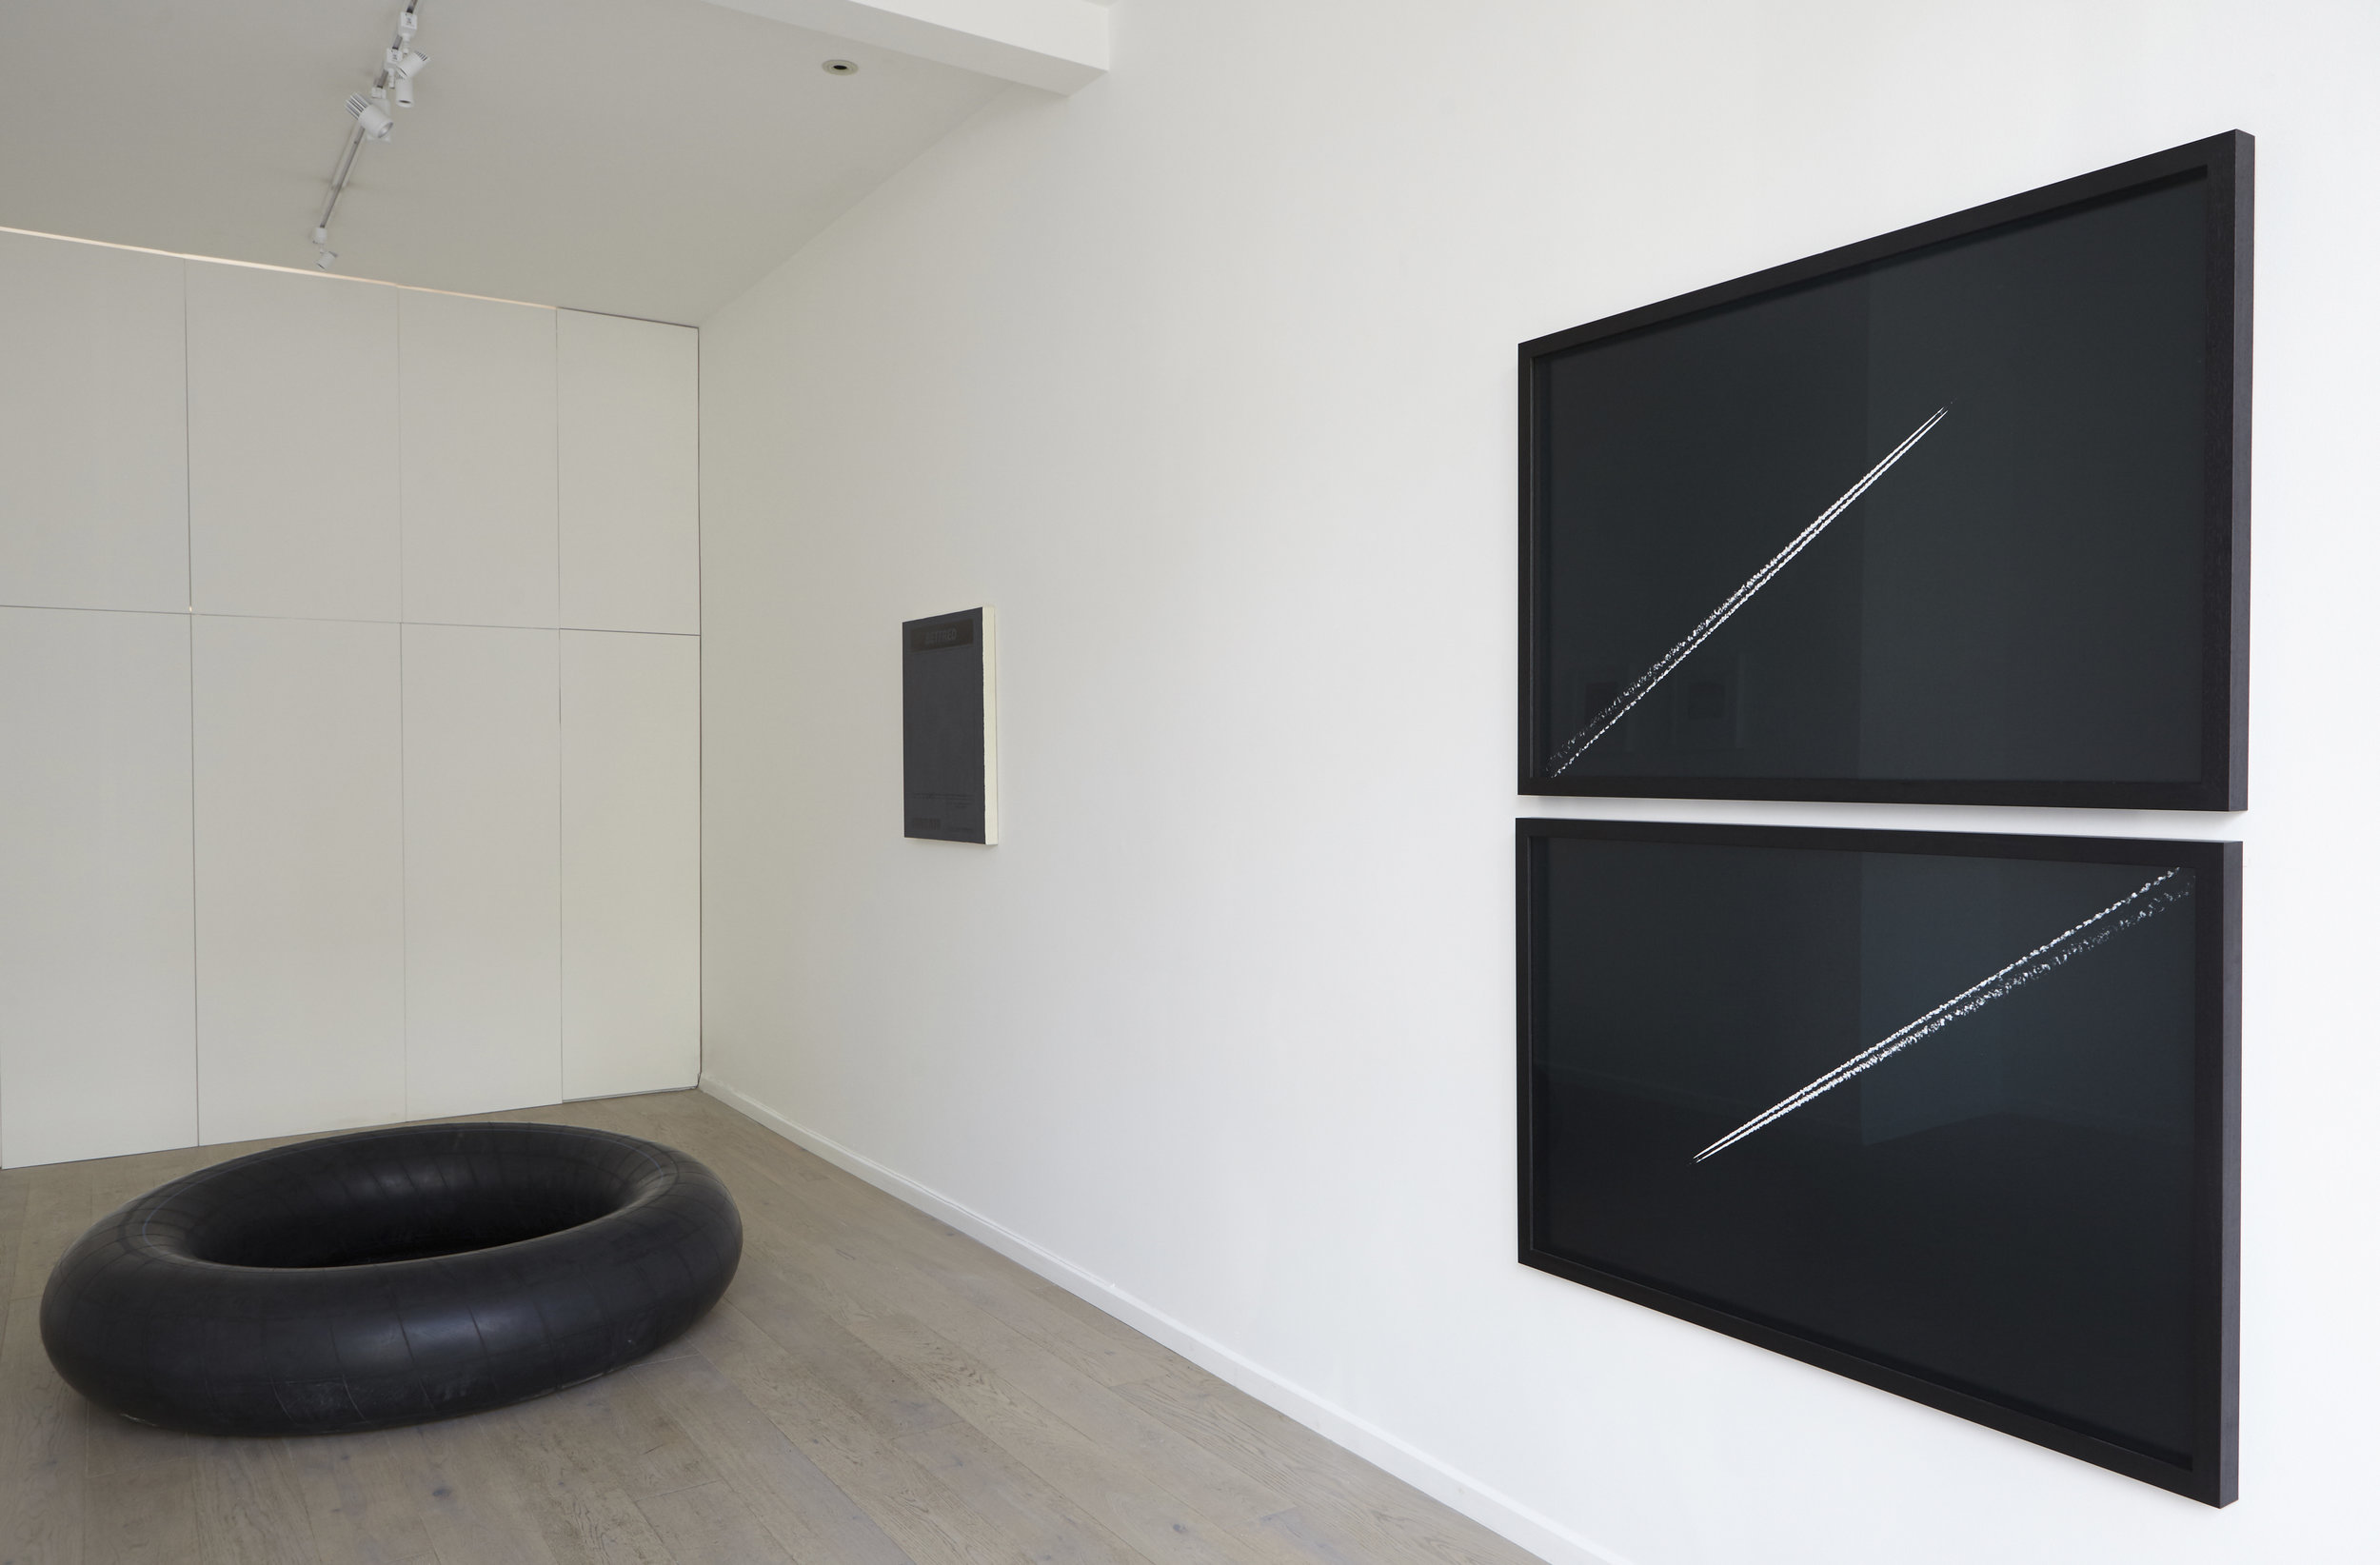 Kingsley Ifill 'Squared circle', 2016, Television, inner tube, one tube of compressed air.    (Piece completed once all air has naturally diffused through rubber).    Dimensions variable.    Kingsley Ifill 'Unpredictable', 2017,  Acrylic on canvas.     Alex Sain 'Fight or Flight' 2017, Pair of identical Ra4 prints with negative